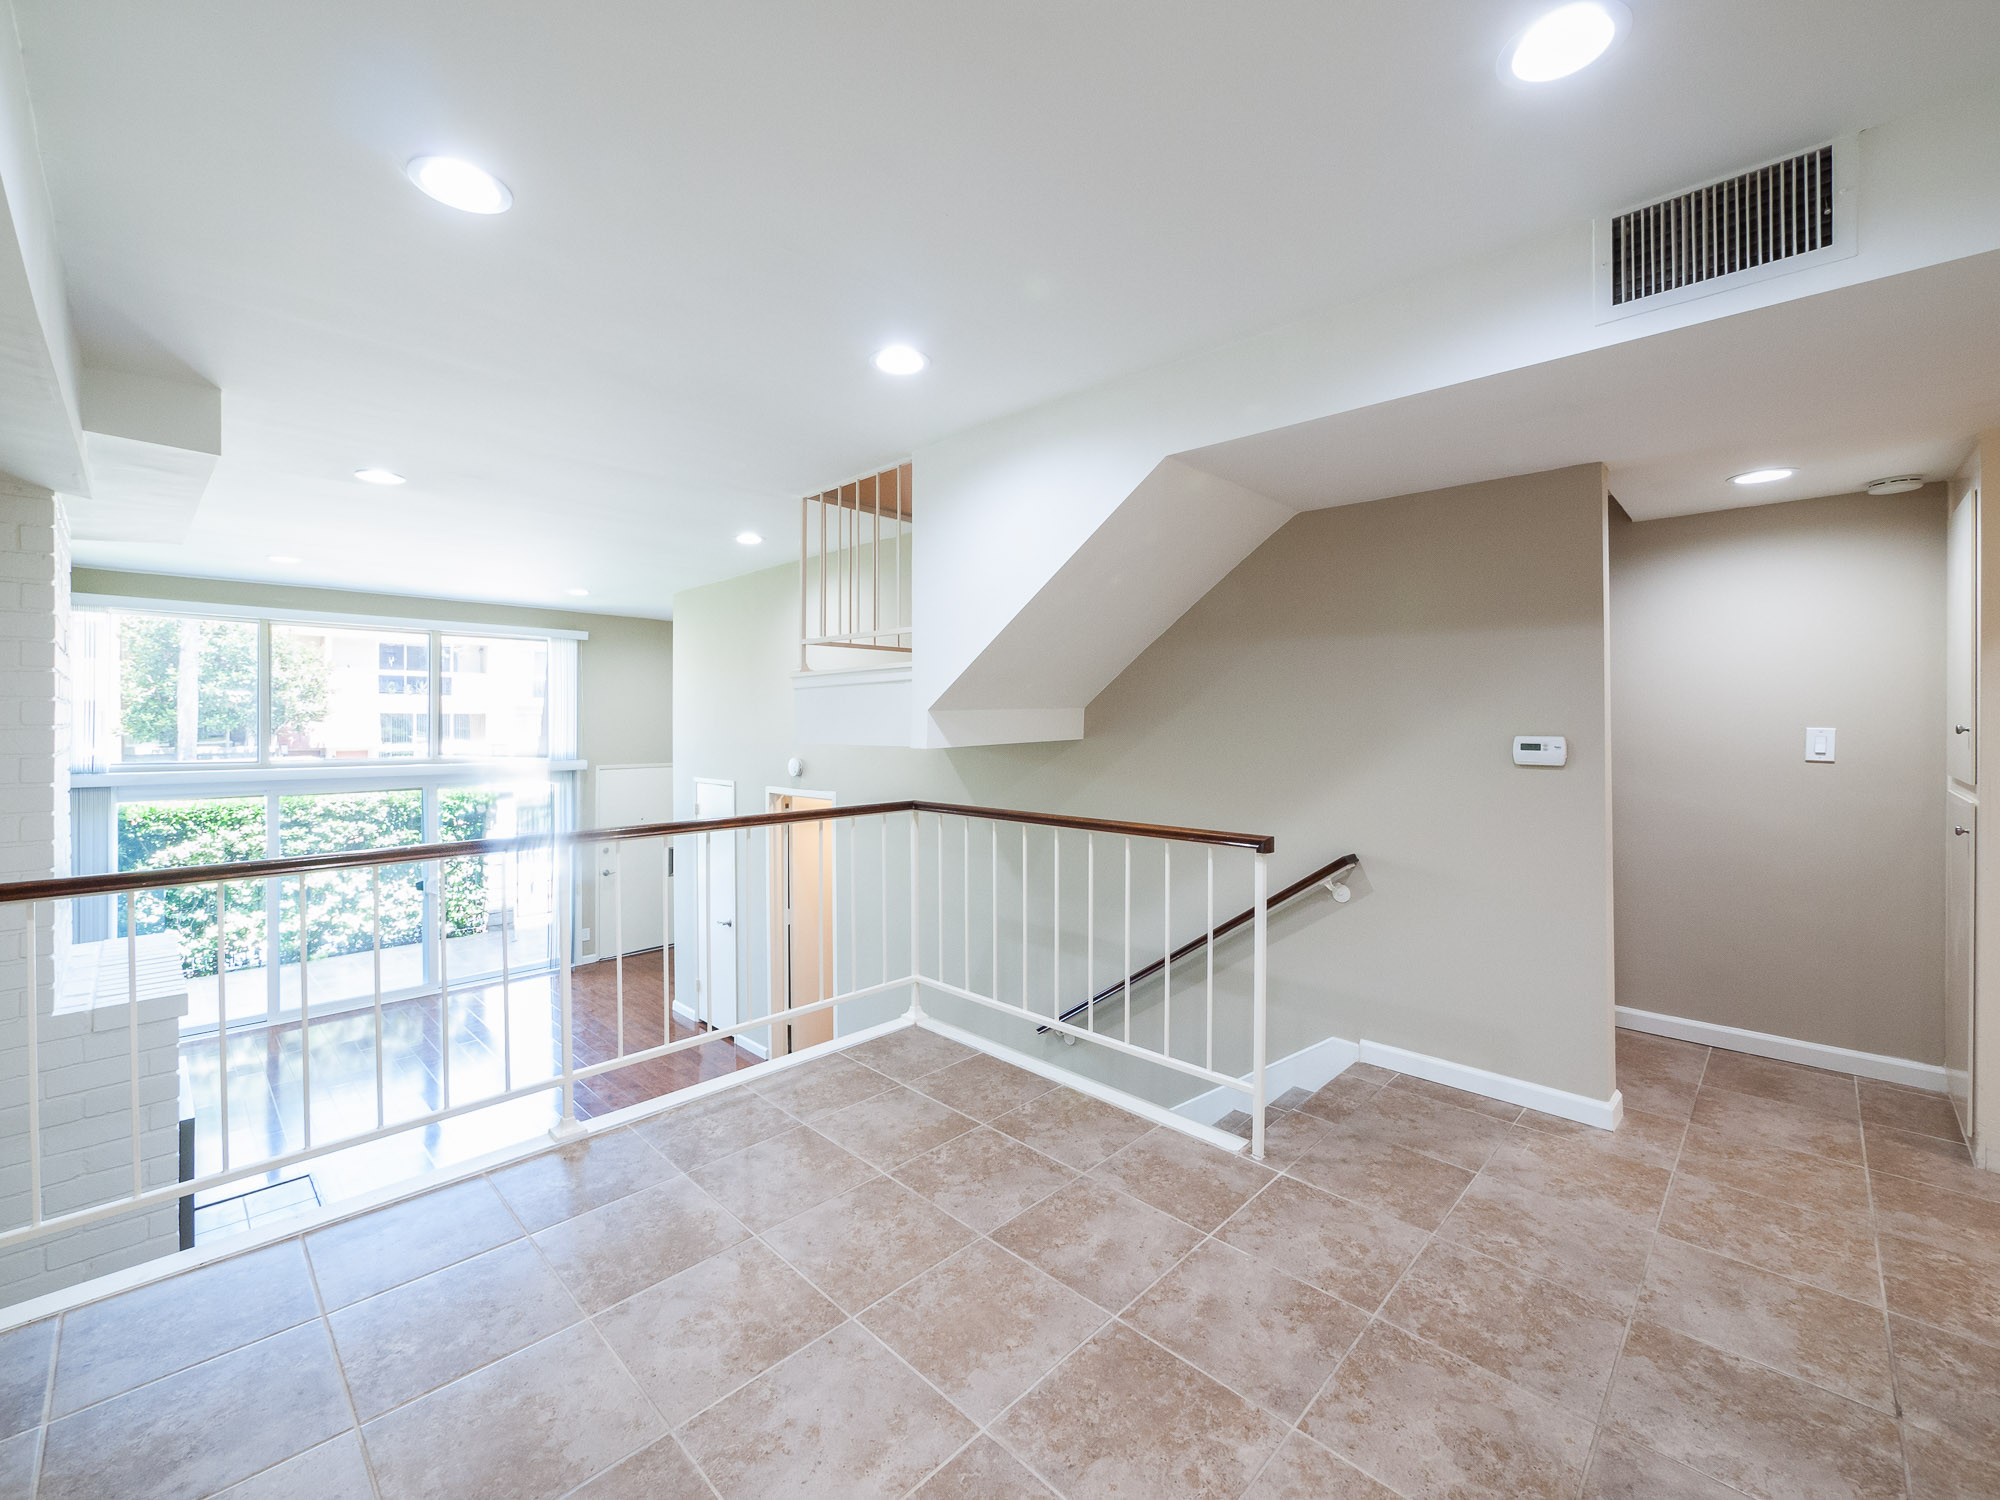 Dramatic High Ceilings & Floor-to-Ceiling Windows in This Exceptionally Remodeled Tri-Level Townhouse with Attached 2-Car Garage